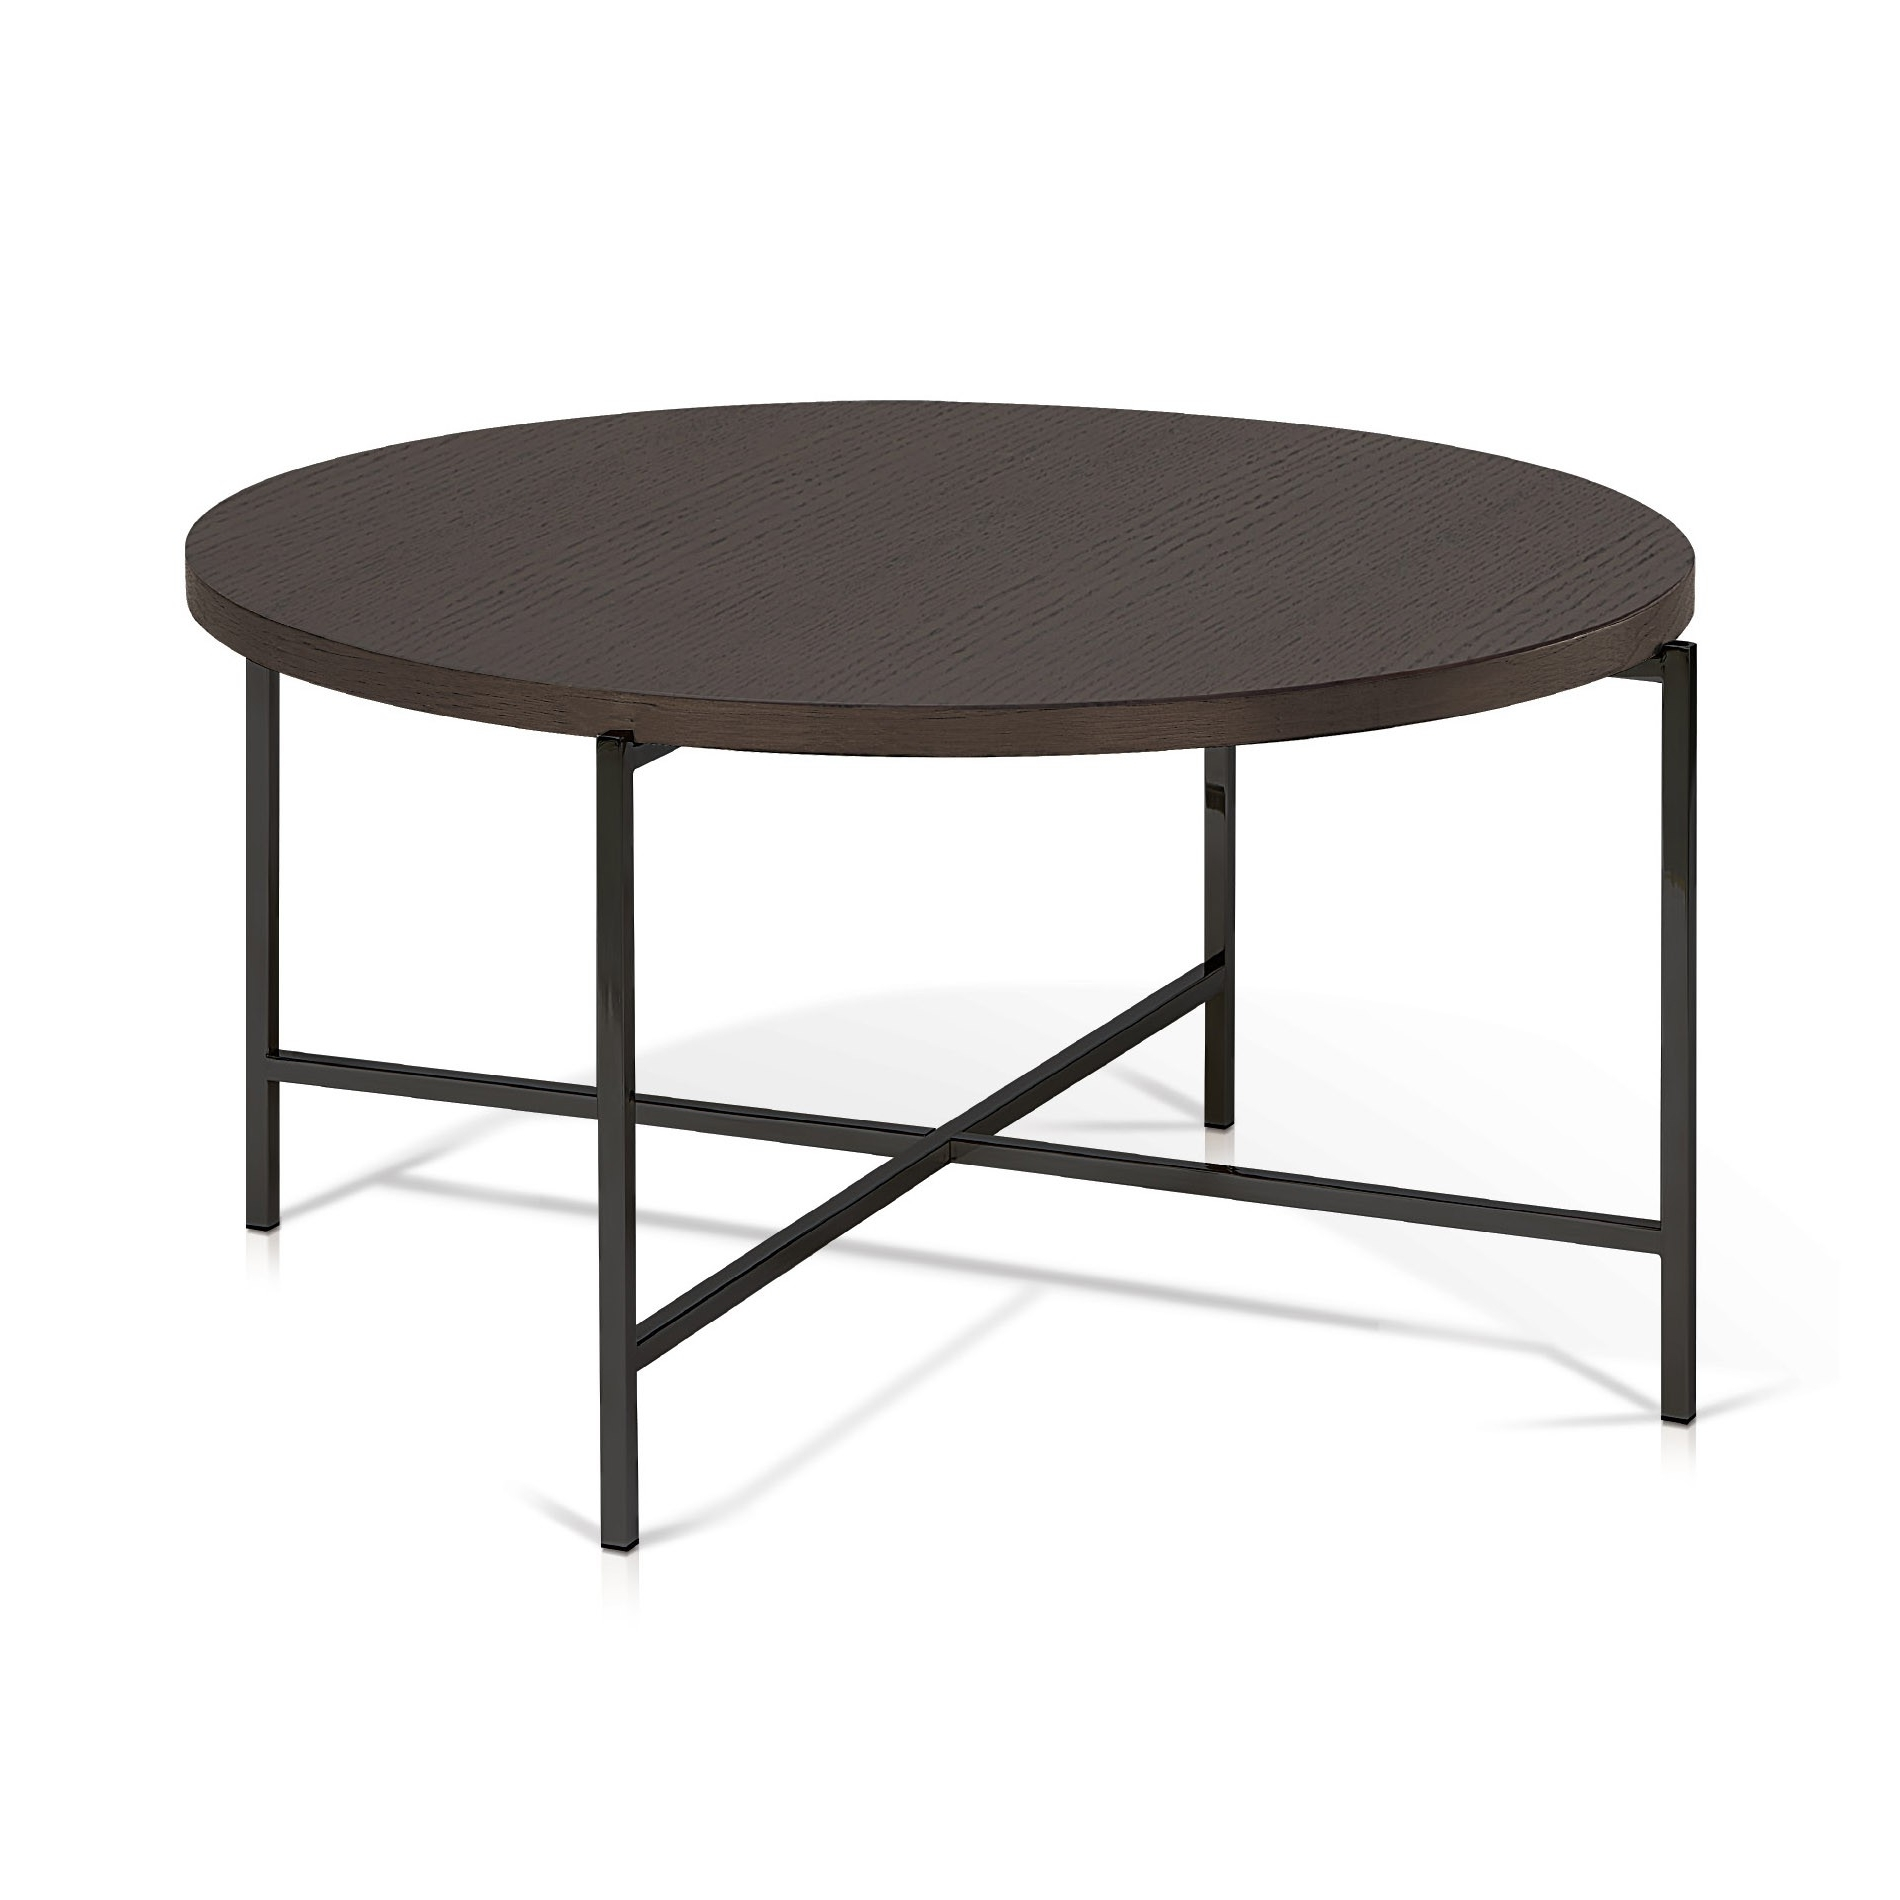 Best And Newest Smoked Oak Coffee Tables Regarding Korson Sef2531 Bergen – Smoked Oak Top Round Coffee Table (View 9 of 20)